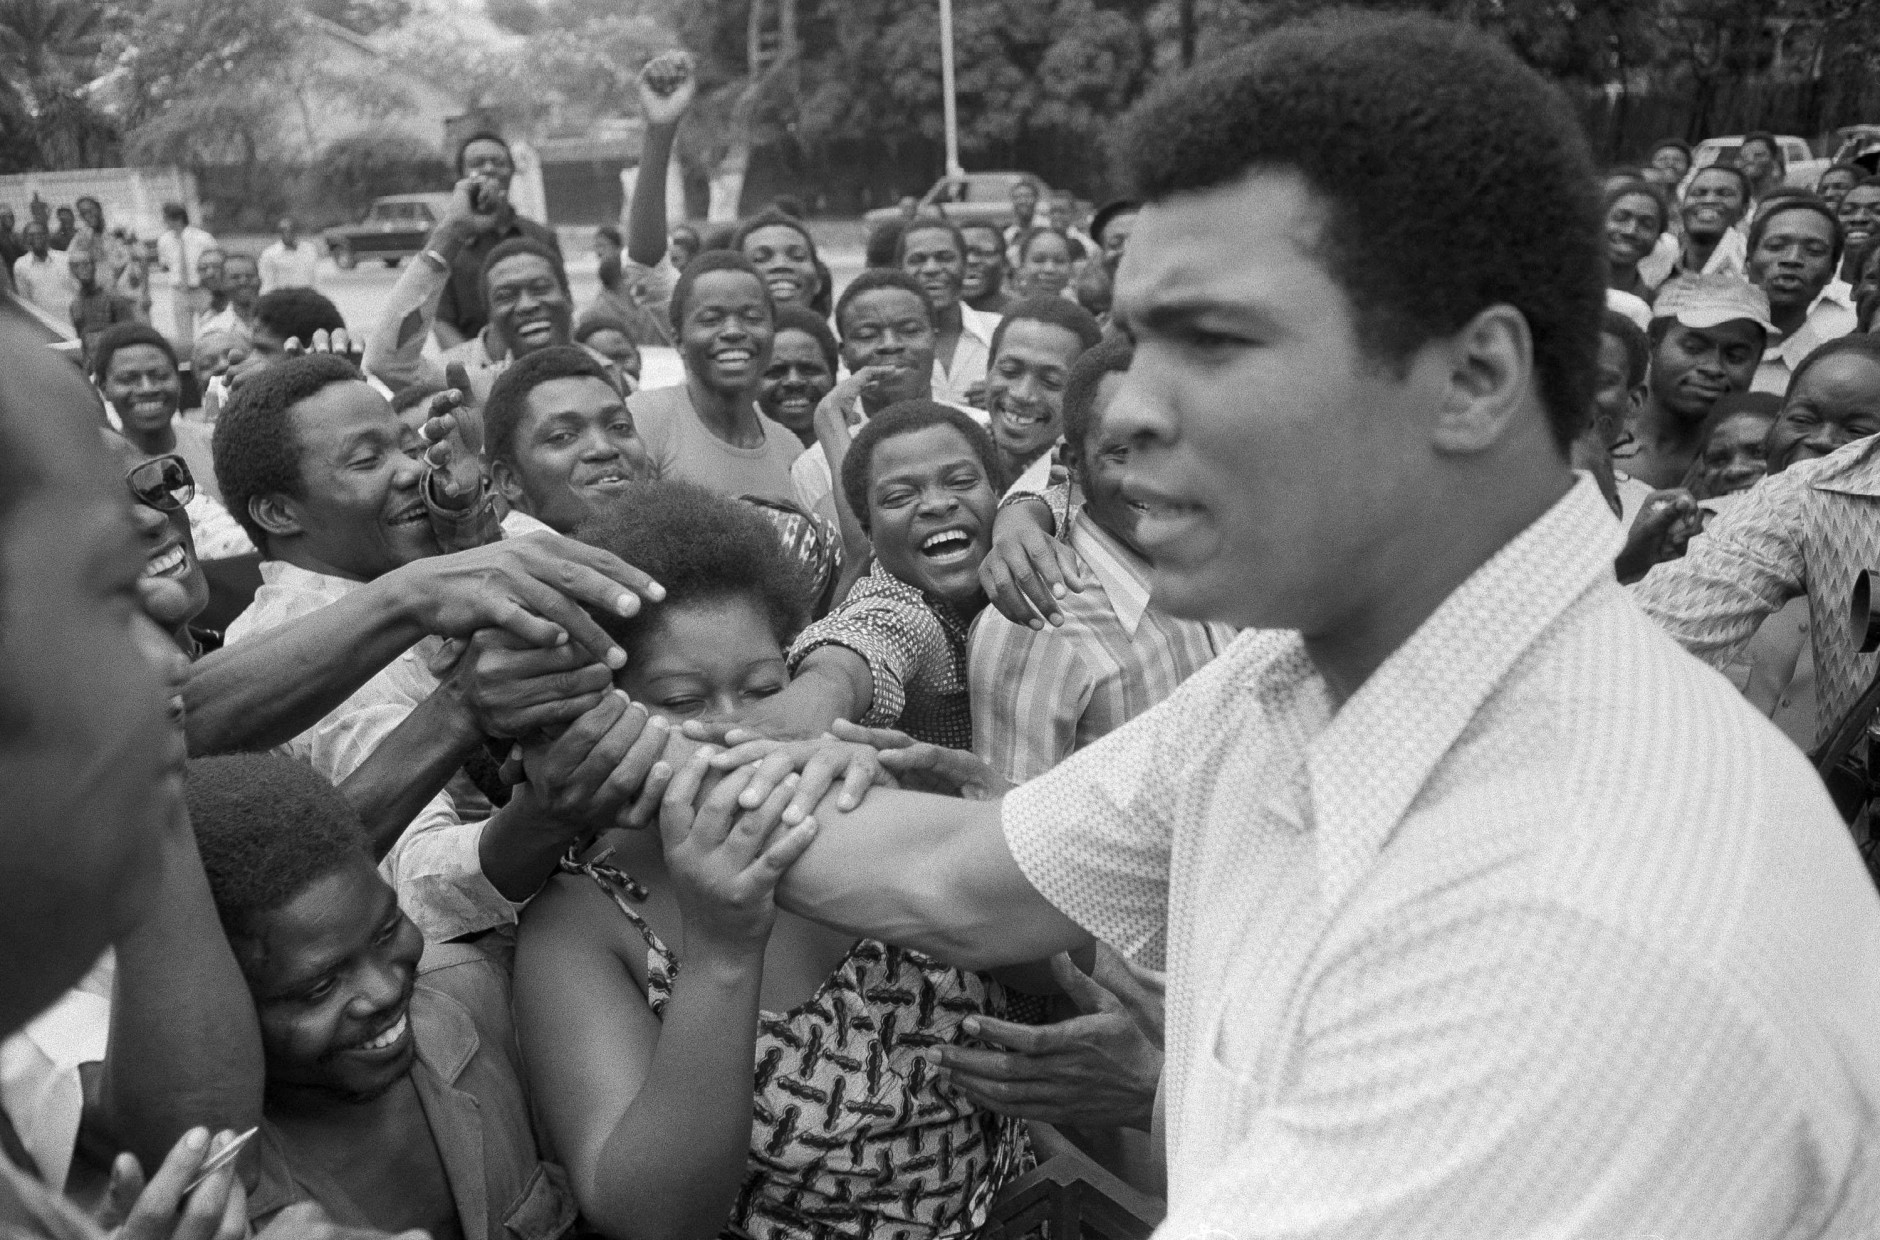 FILE - In this Sept. 17, 1974, file photo, Muhammad Ali is greeted in downtown Kinshasa, Zaire. Ali is in Zaire to fight George Foreman. Ali, the magnificent heavyweight champion whose fast fists and irrepressible personality transcended sports and captivated the world, has died according to a statement released by his family Friday, June 3, 2016. He was 74. (AP Photo)